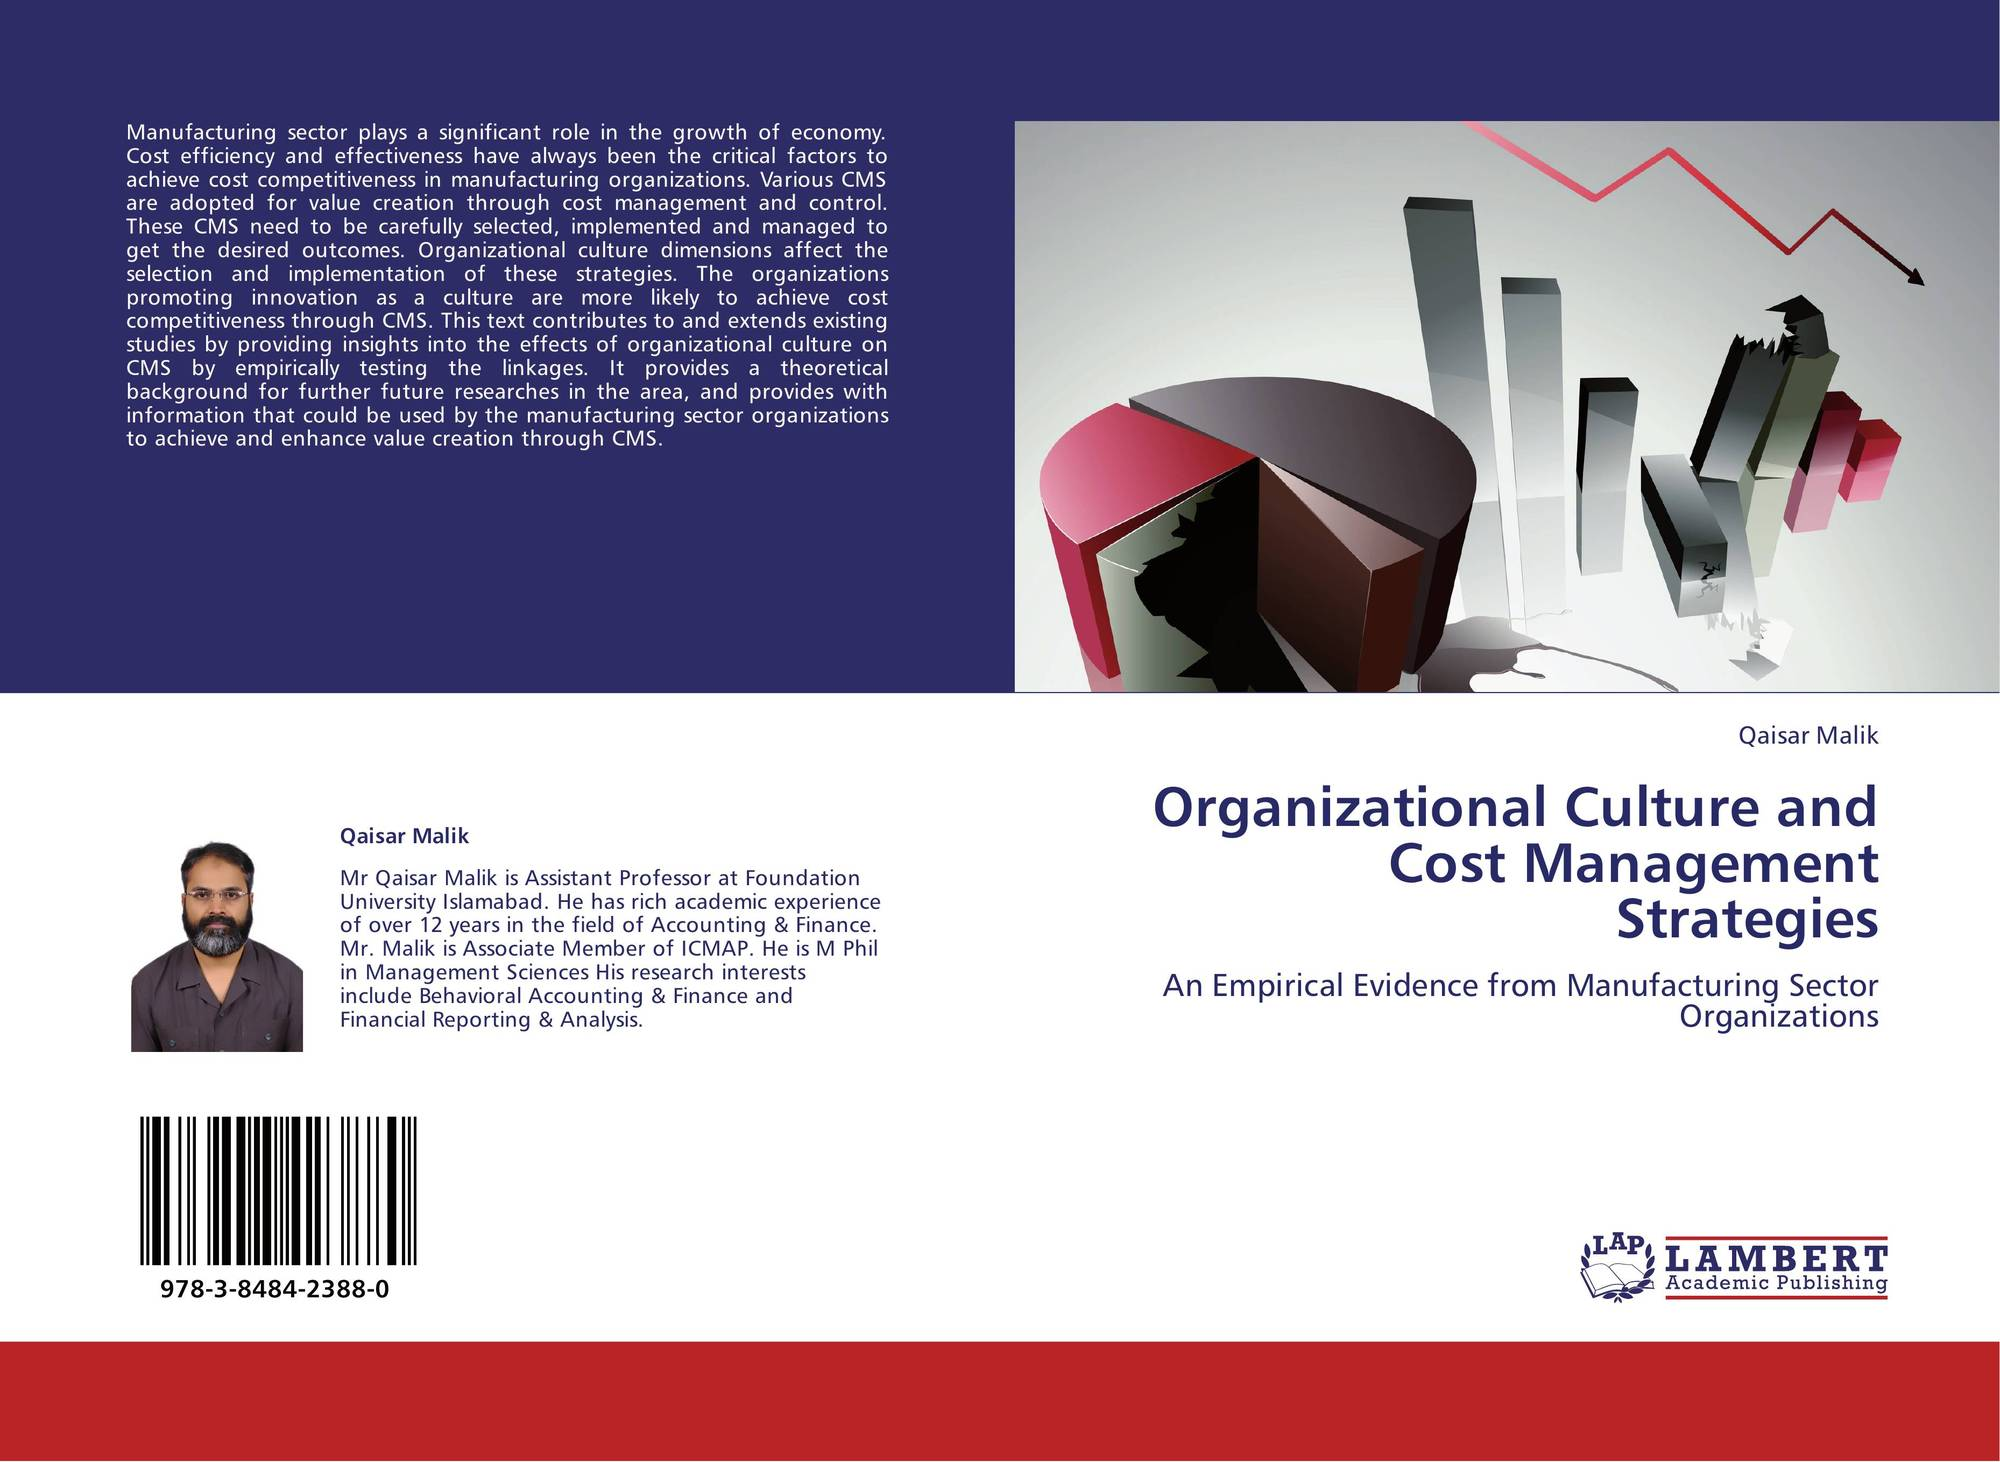 downsizing and organizational culture